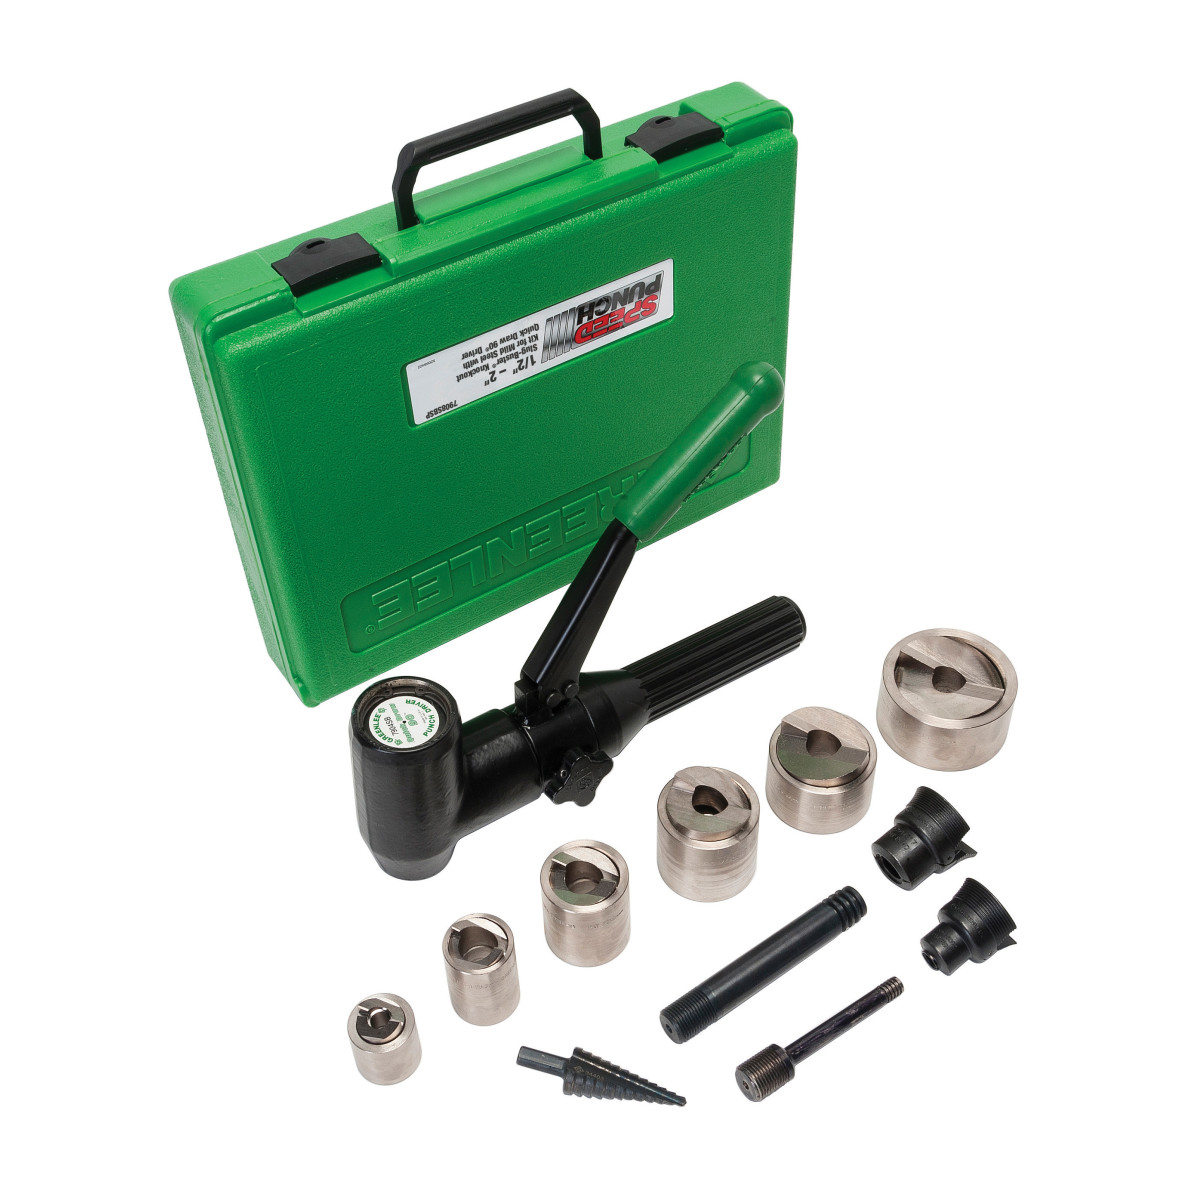 SPEED PUNCH KIT 1/2-2 MS W/DRIVER